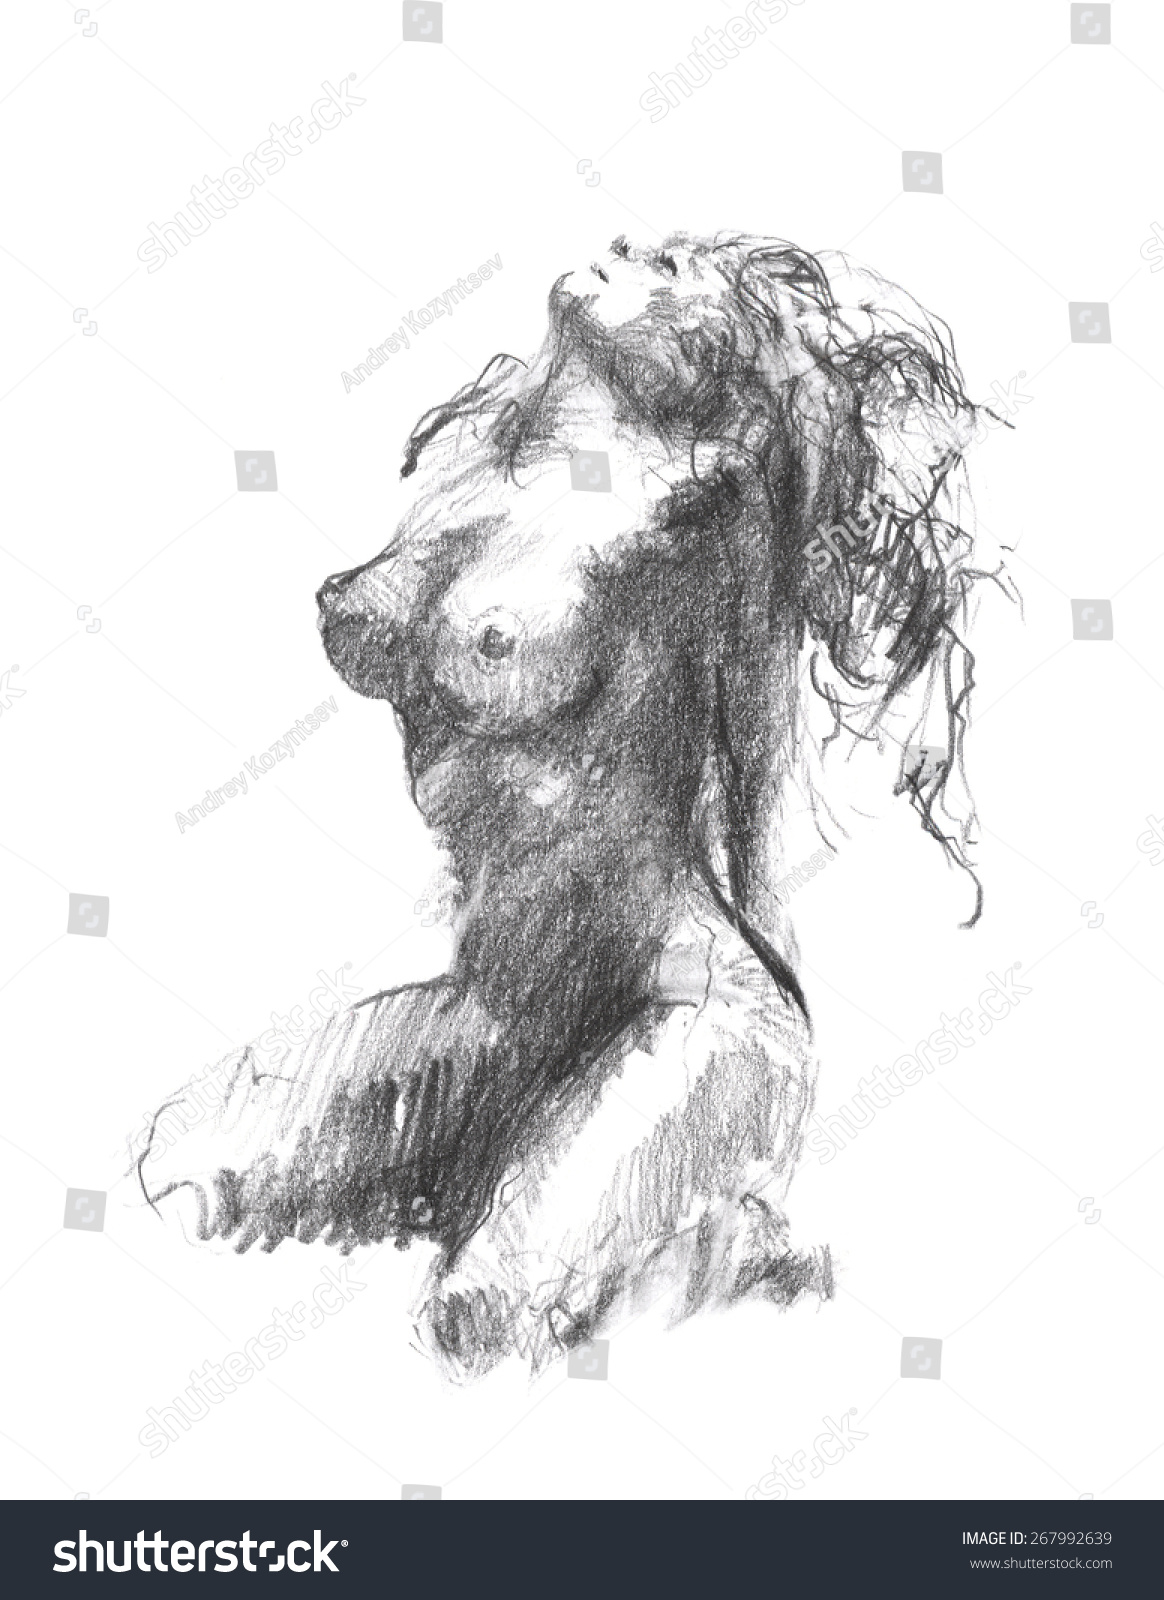 Naked woman pencil sketch